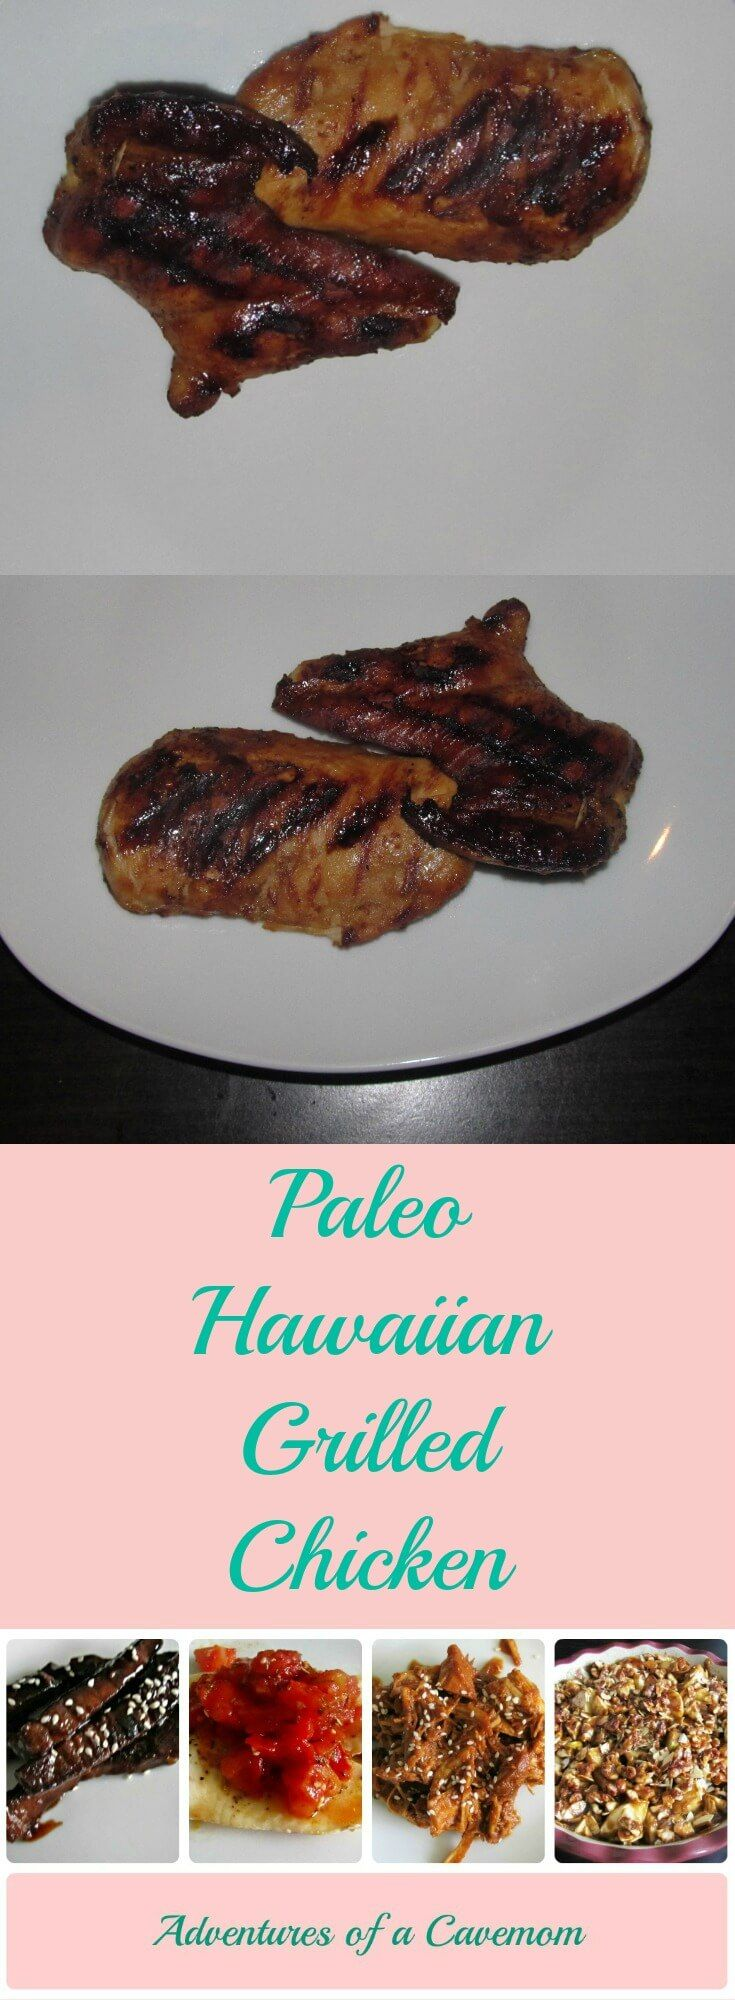 Paleo Hawaiian Grilled Chicken- This grilled chicken is a tropical twist on your dinner routine. Made without dairy, soy, or gluten!